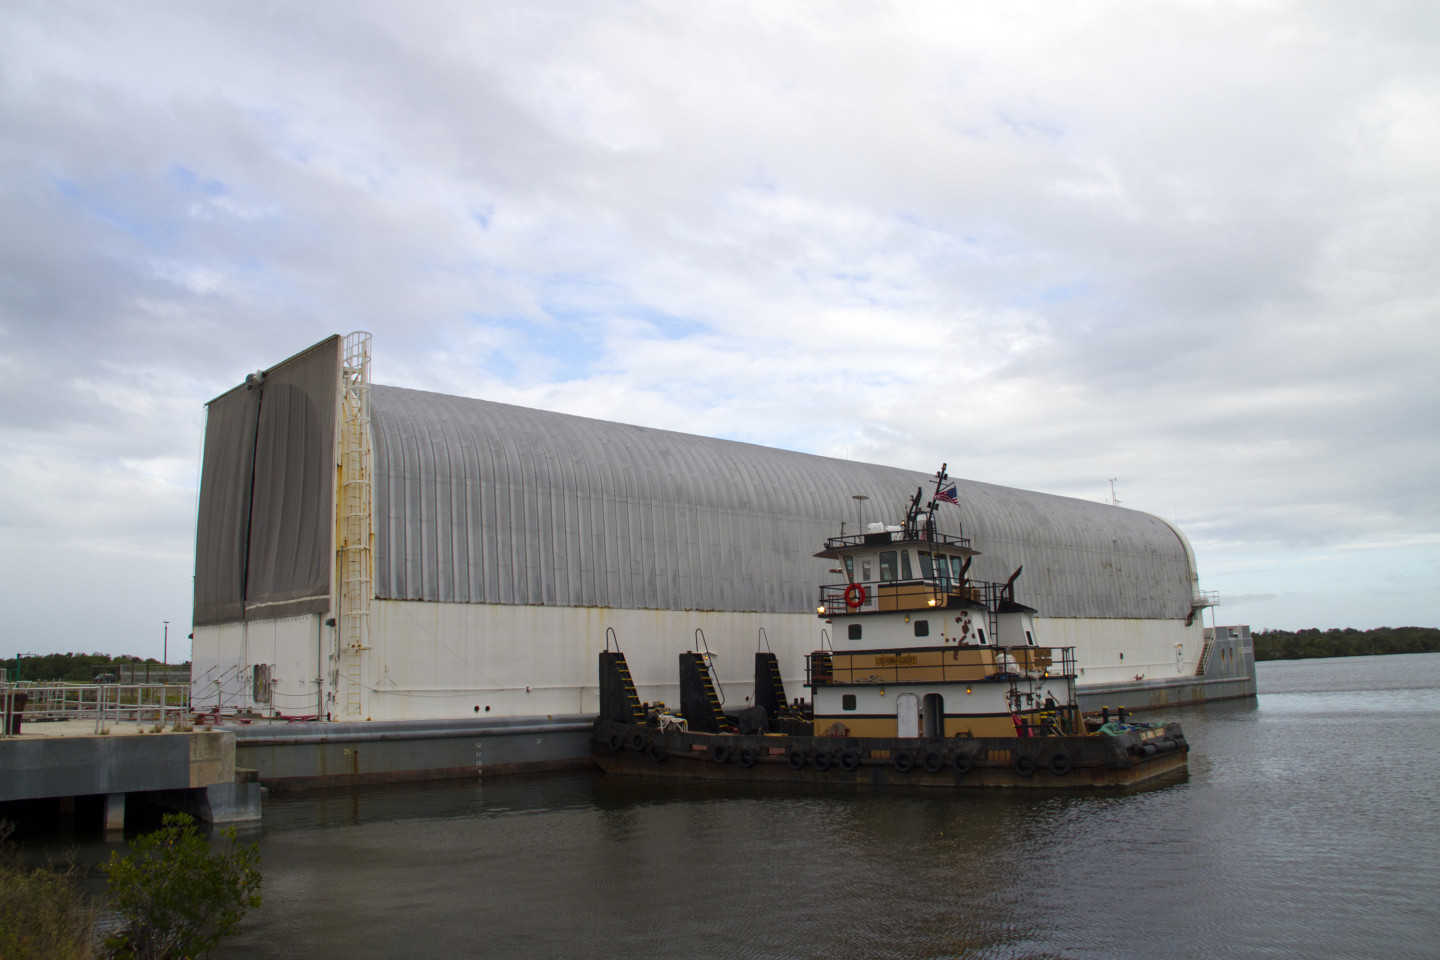 nasa-s-pegasus-barge-last-of-its-kind-gets-new-lea-1